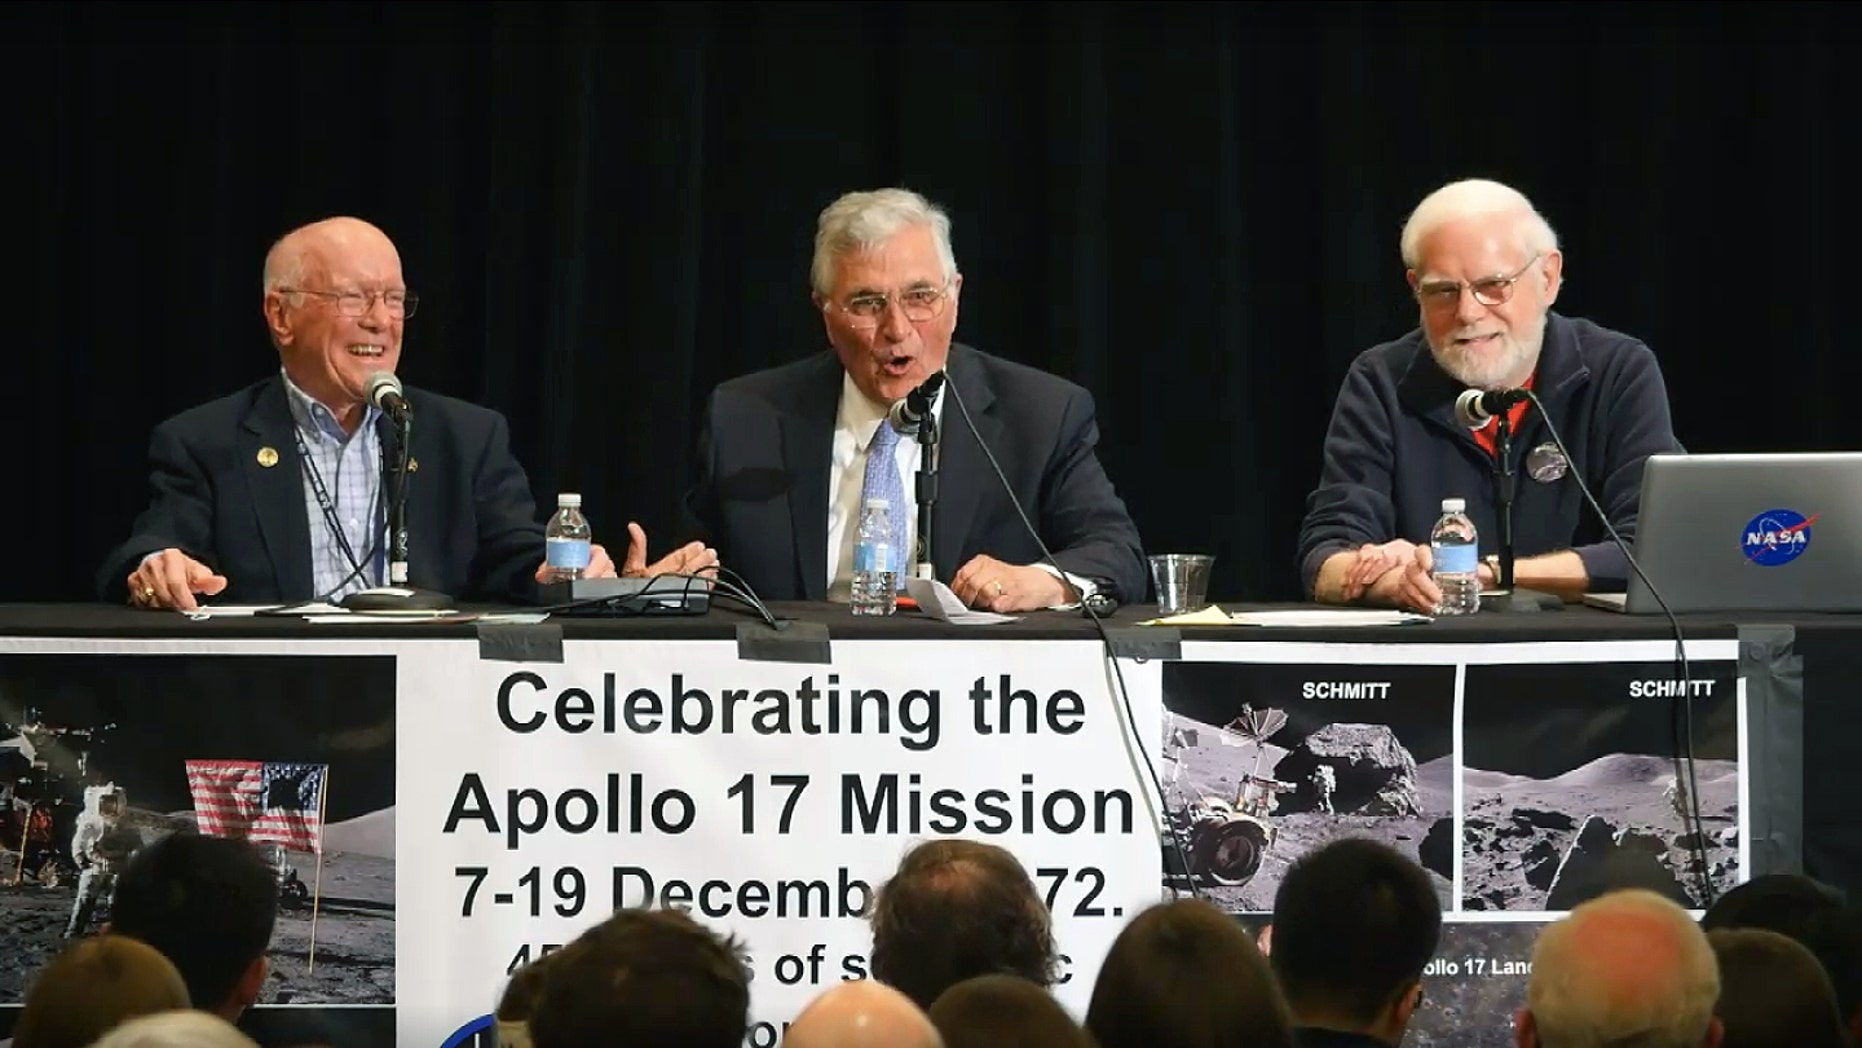 Apollo 17 flight director Gerry Griffin (left), retired astronaut Jack Schmitt (center) and backroom scientist James Head held a panel discussion for the 45th anniversary of the Apollo 17 mission at the Lunar and Planetary Science Conference in The Woodlands, Texas, on March 21, 2018.